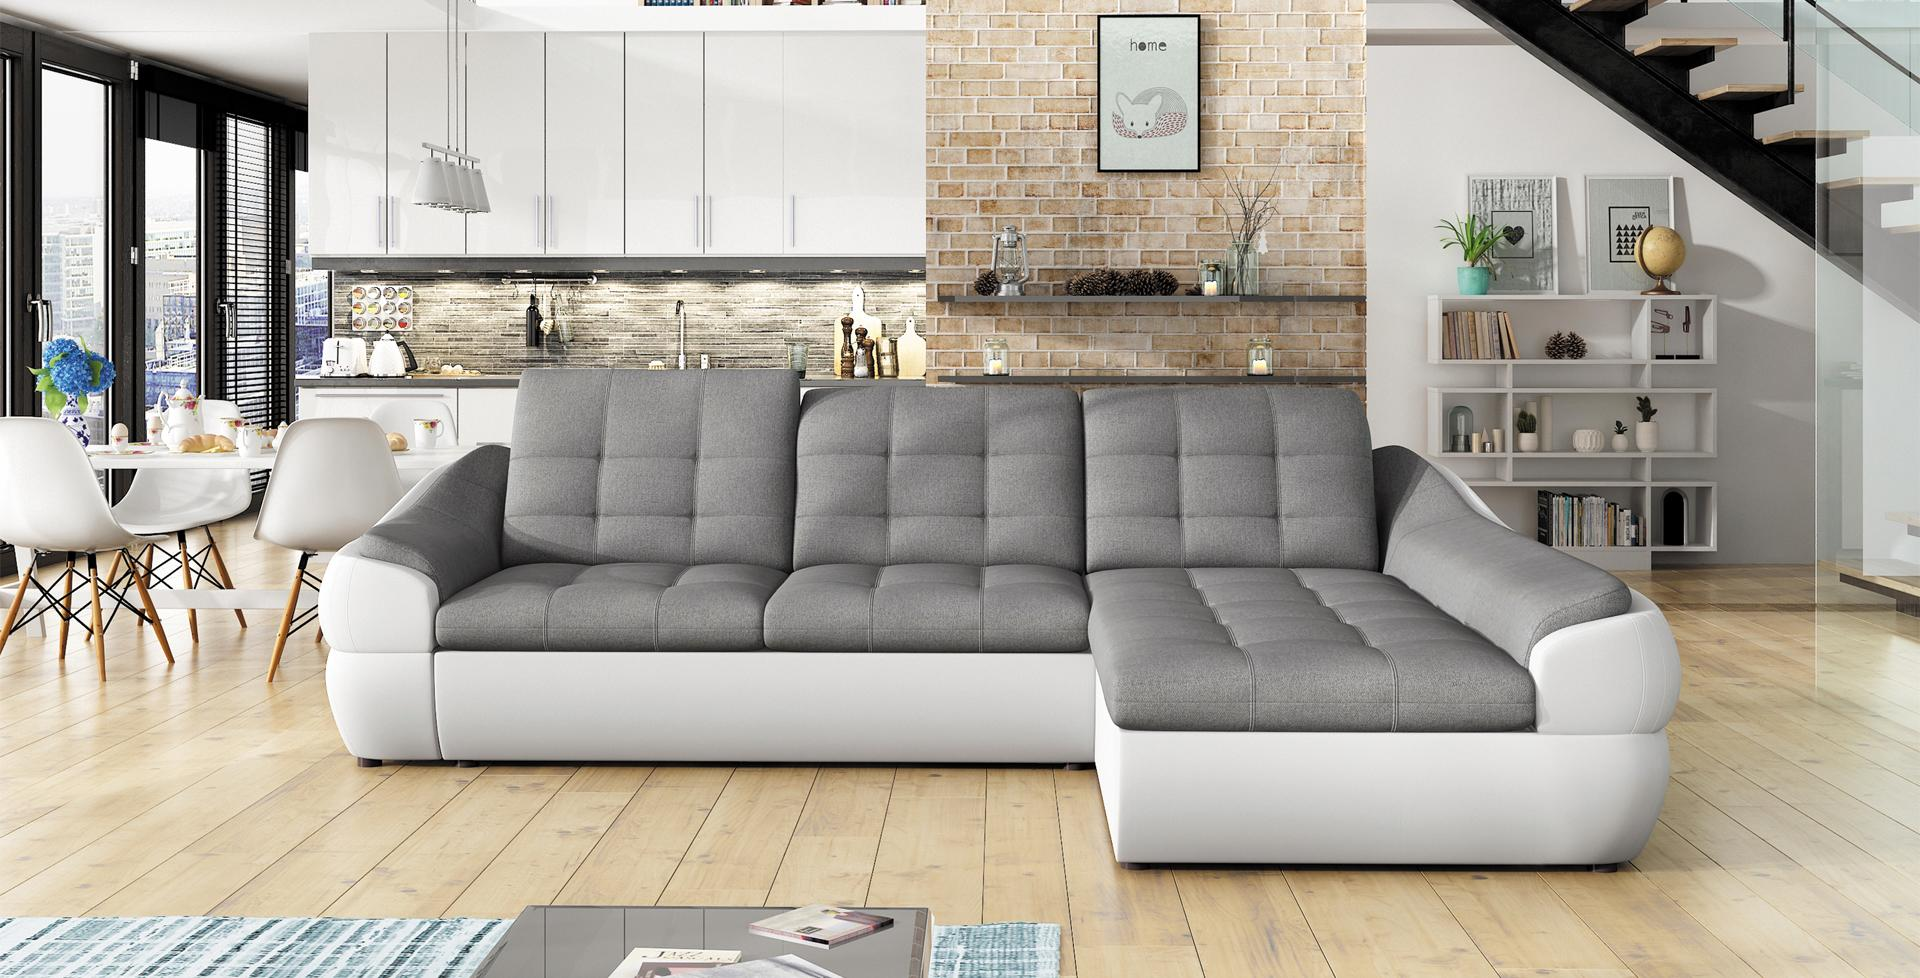 Sofa schlafsofa designer sofa mit bettfunktion for Sofa mit bettfunktion